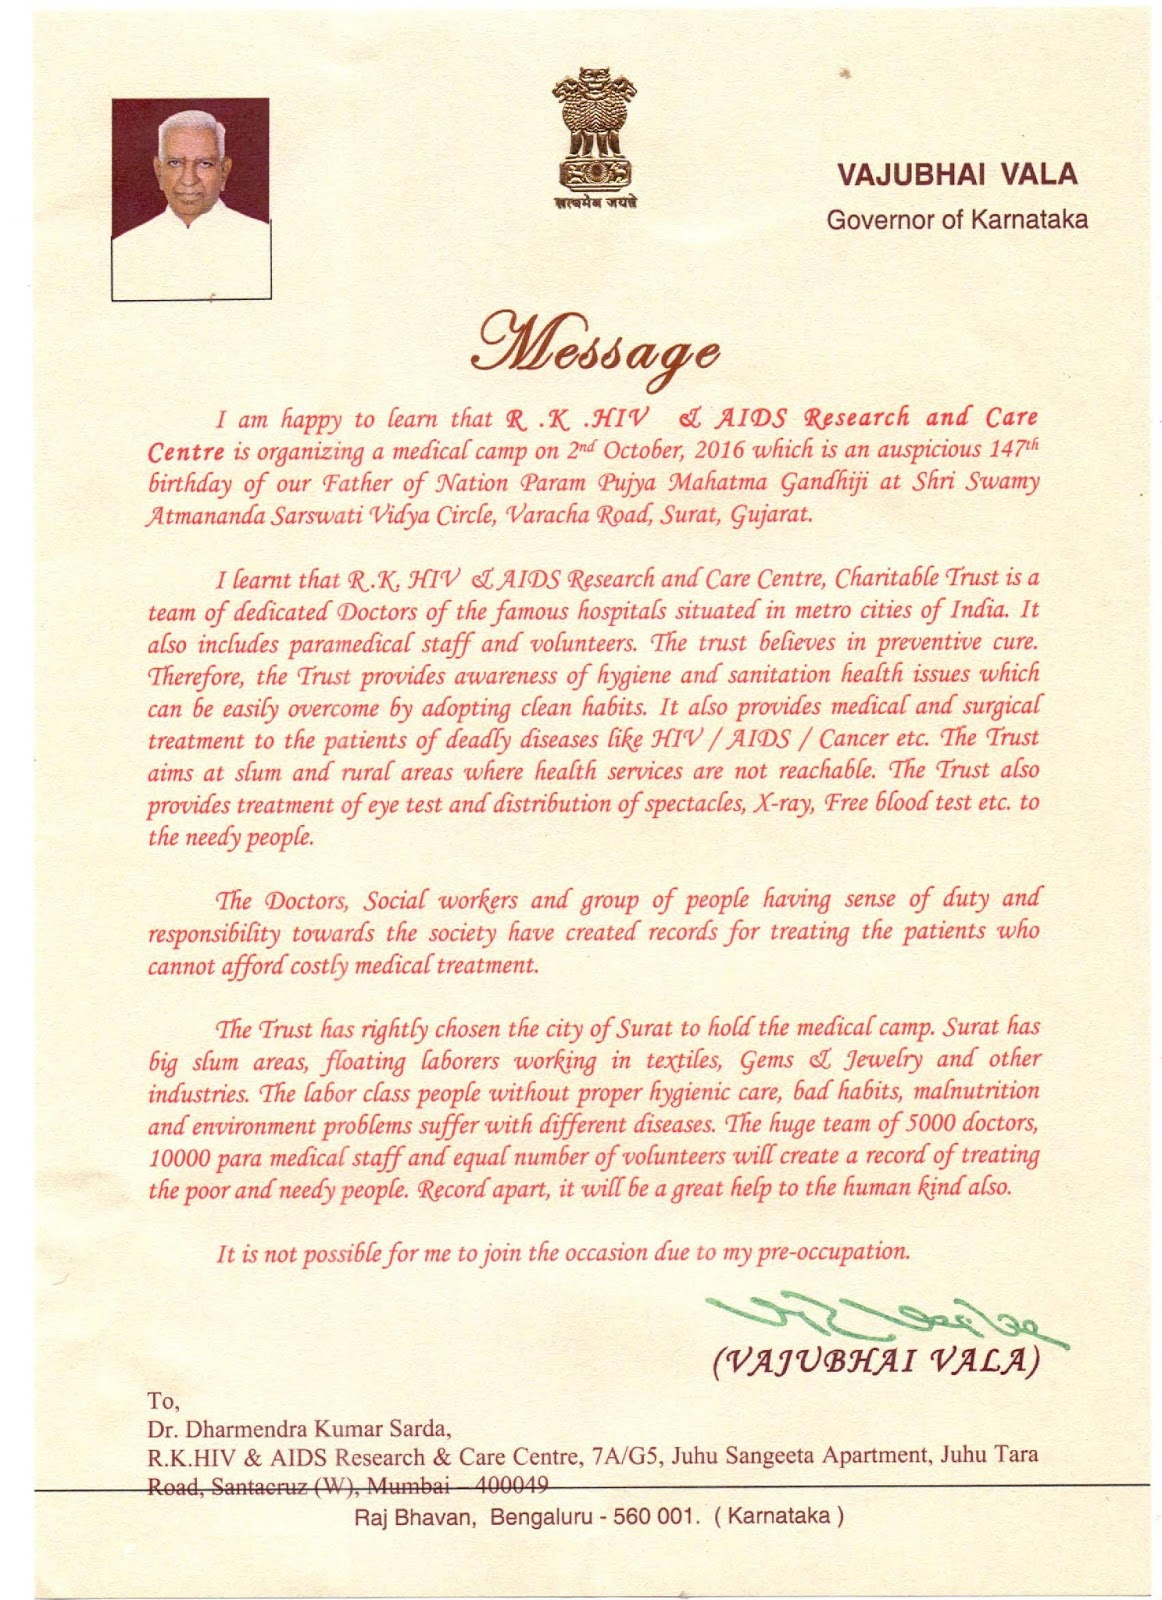 Appreciation letter to rk hiv aids research and care centre 2016 appreciation letter by shri vajubhai wala governor of karnataka to rk hiv aids research and care centre for organizing largest free mega medical camp spiritdancerdesigns Choice Image